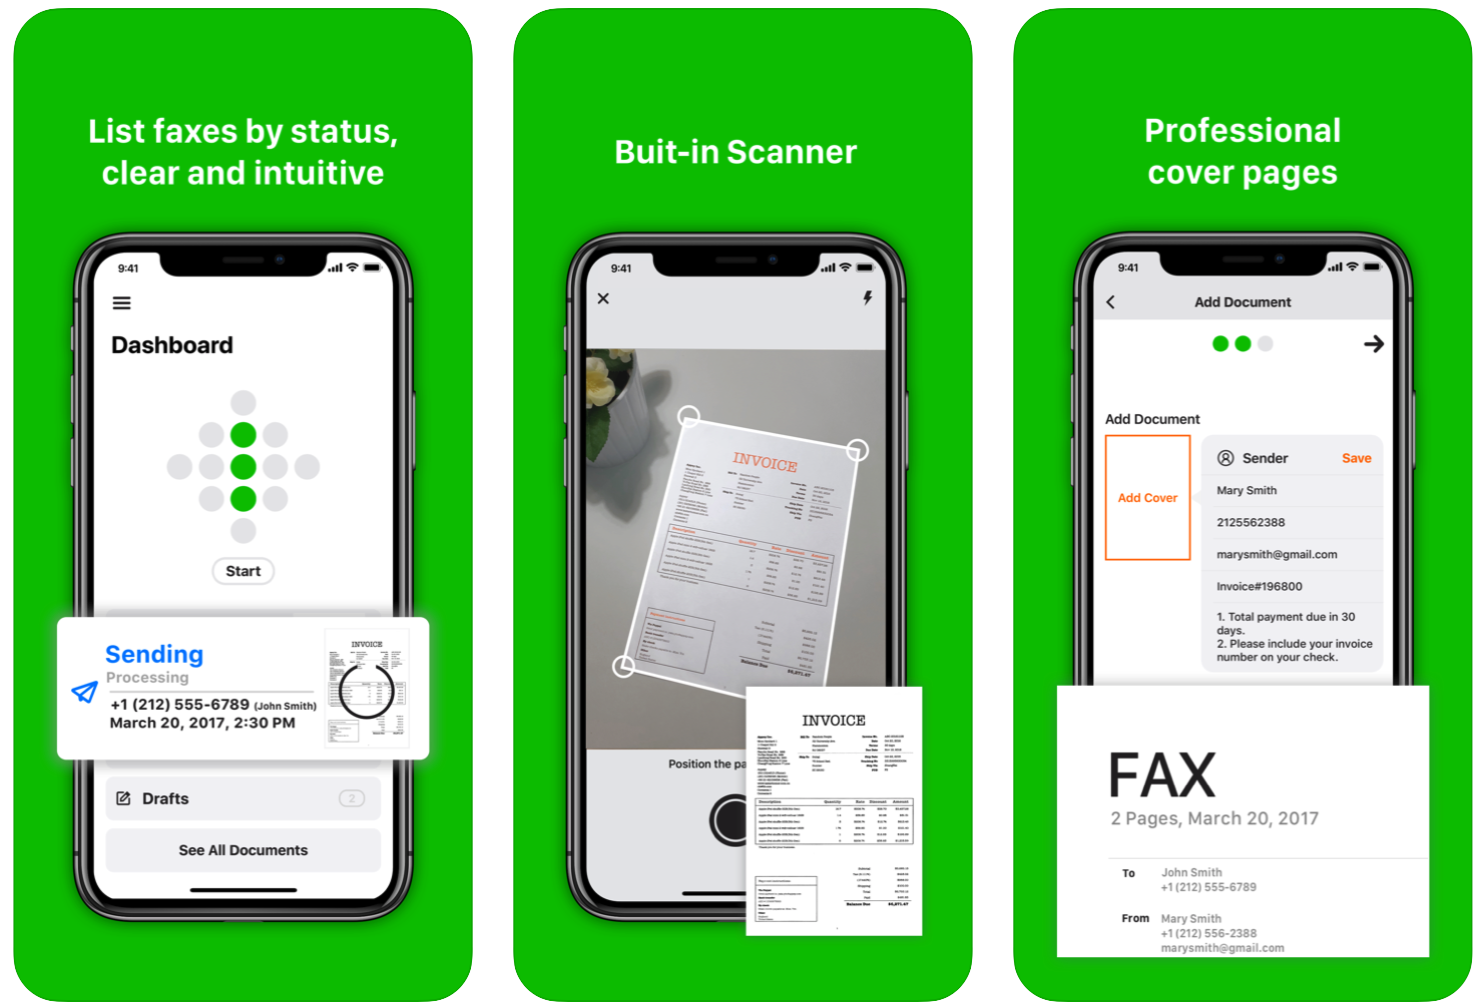 How to receive and send fax with iPhone and iPad apps